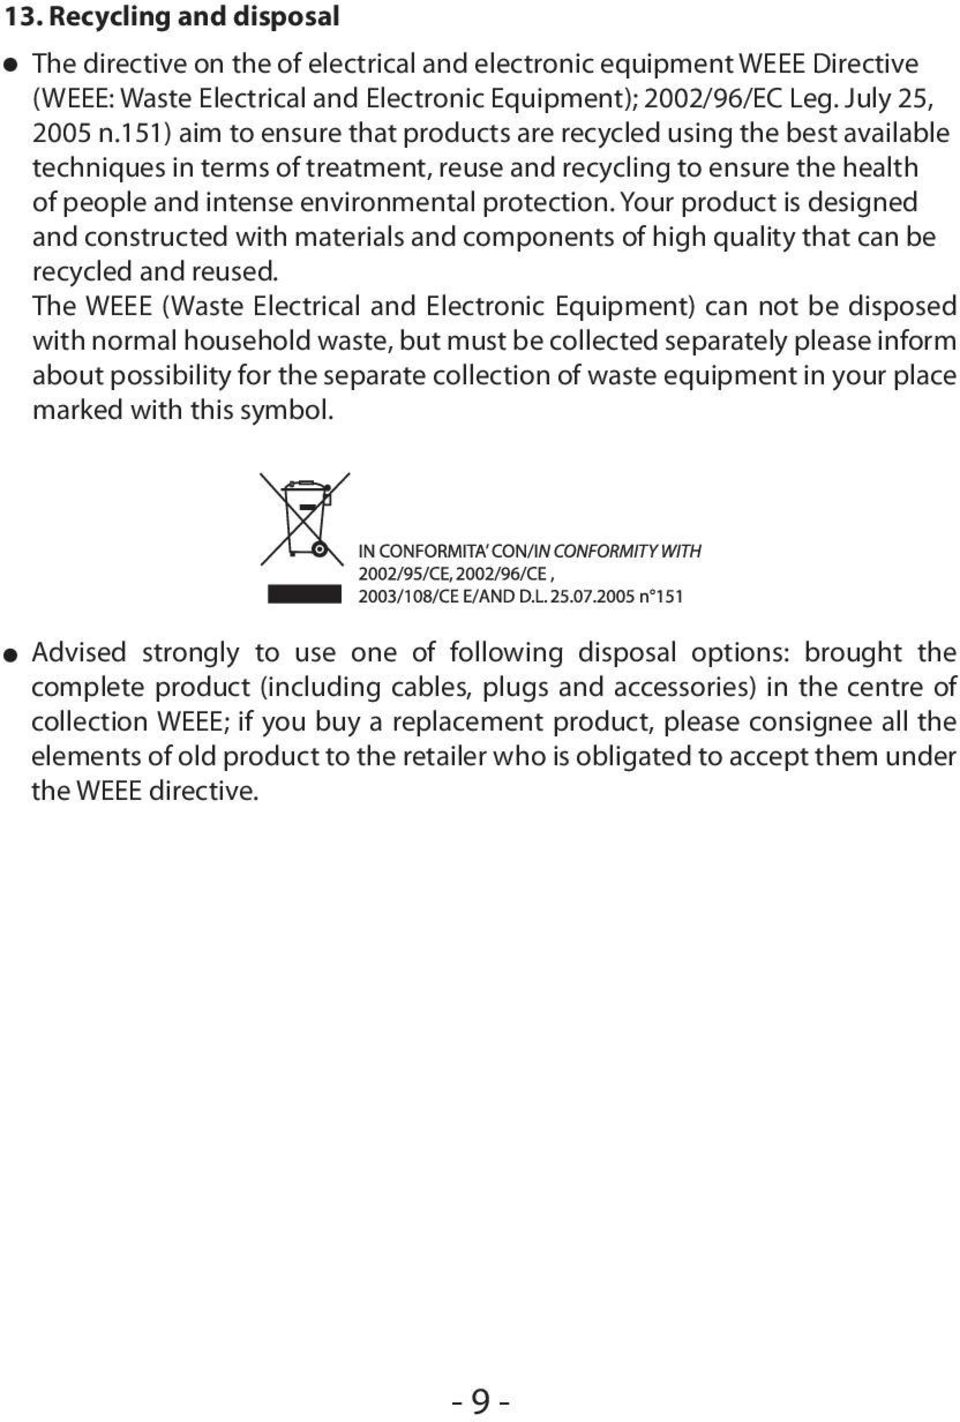 Your product is designed and constructed with materials and components of high quality that can be recycled and reused.